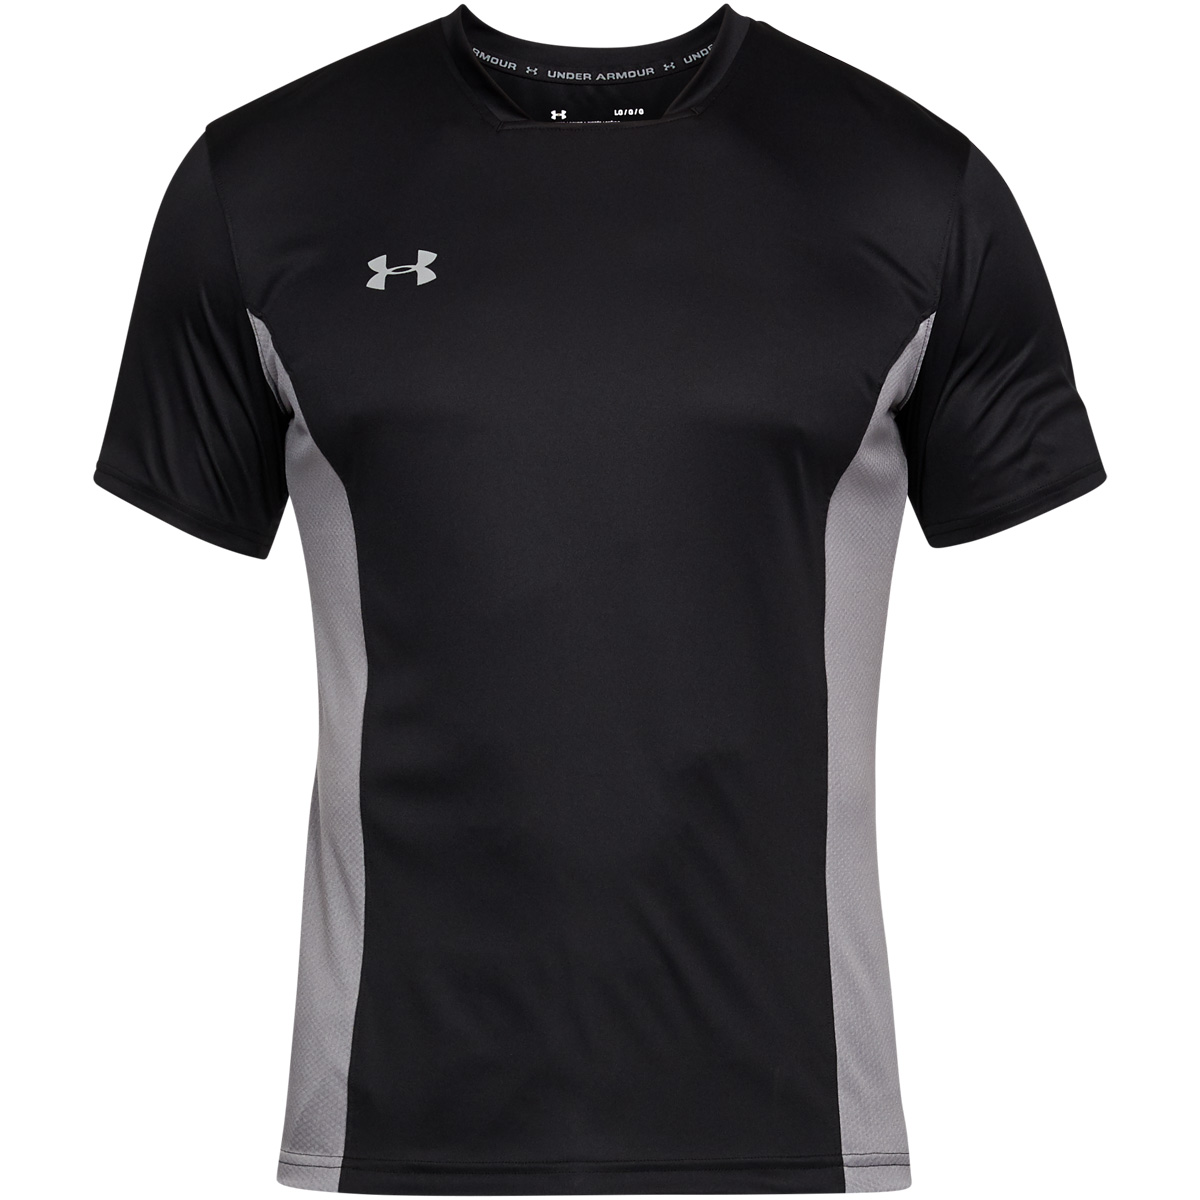 Under-Armour-Mens-Challenger-II-Training-Top-Gym-Training-Sports-T-Shirt